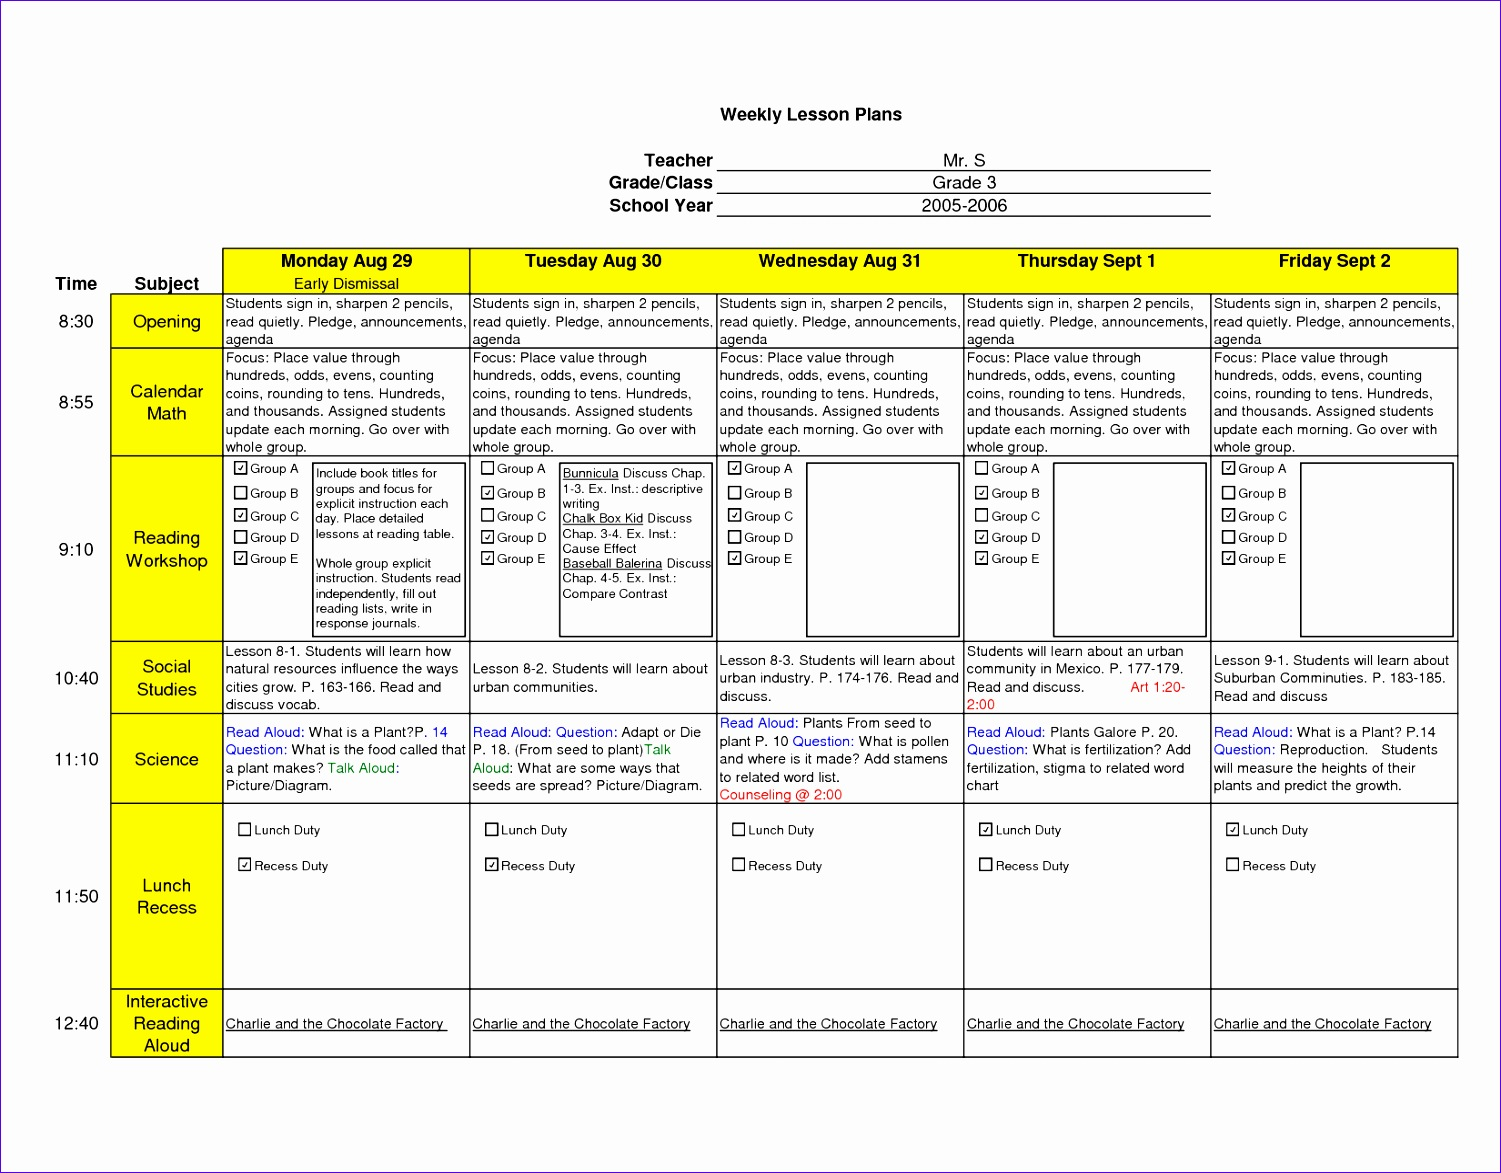 Excel Lesson Plan Template Gallery Templates Example Free Download - Dcps lesson plan template